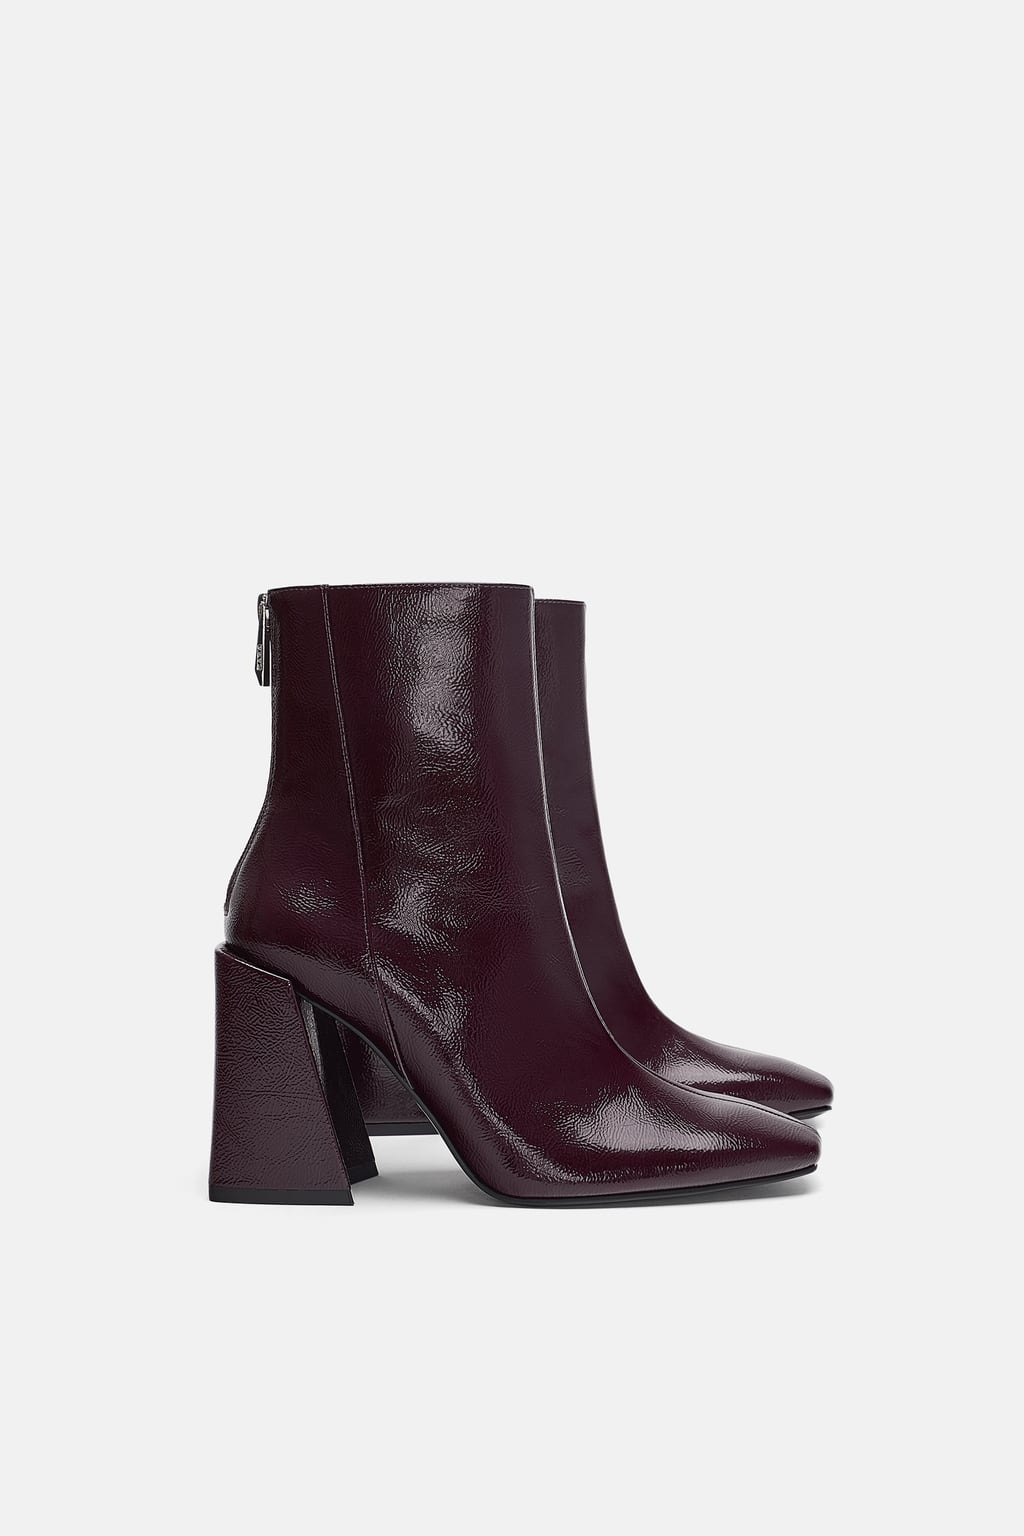 the cheapest clearance prices check out Zara + HEELED ANKLE BOOTS WITH A FAUX PATENT FINISH